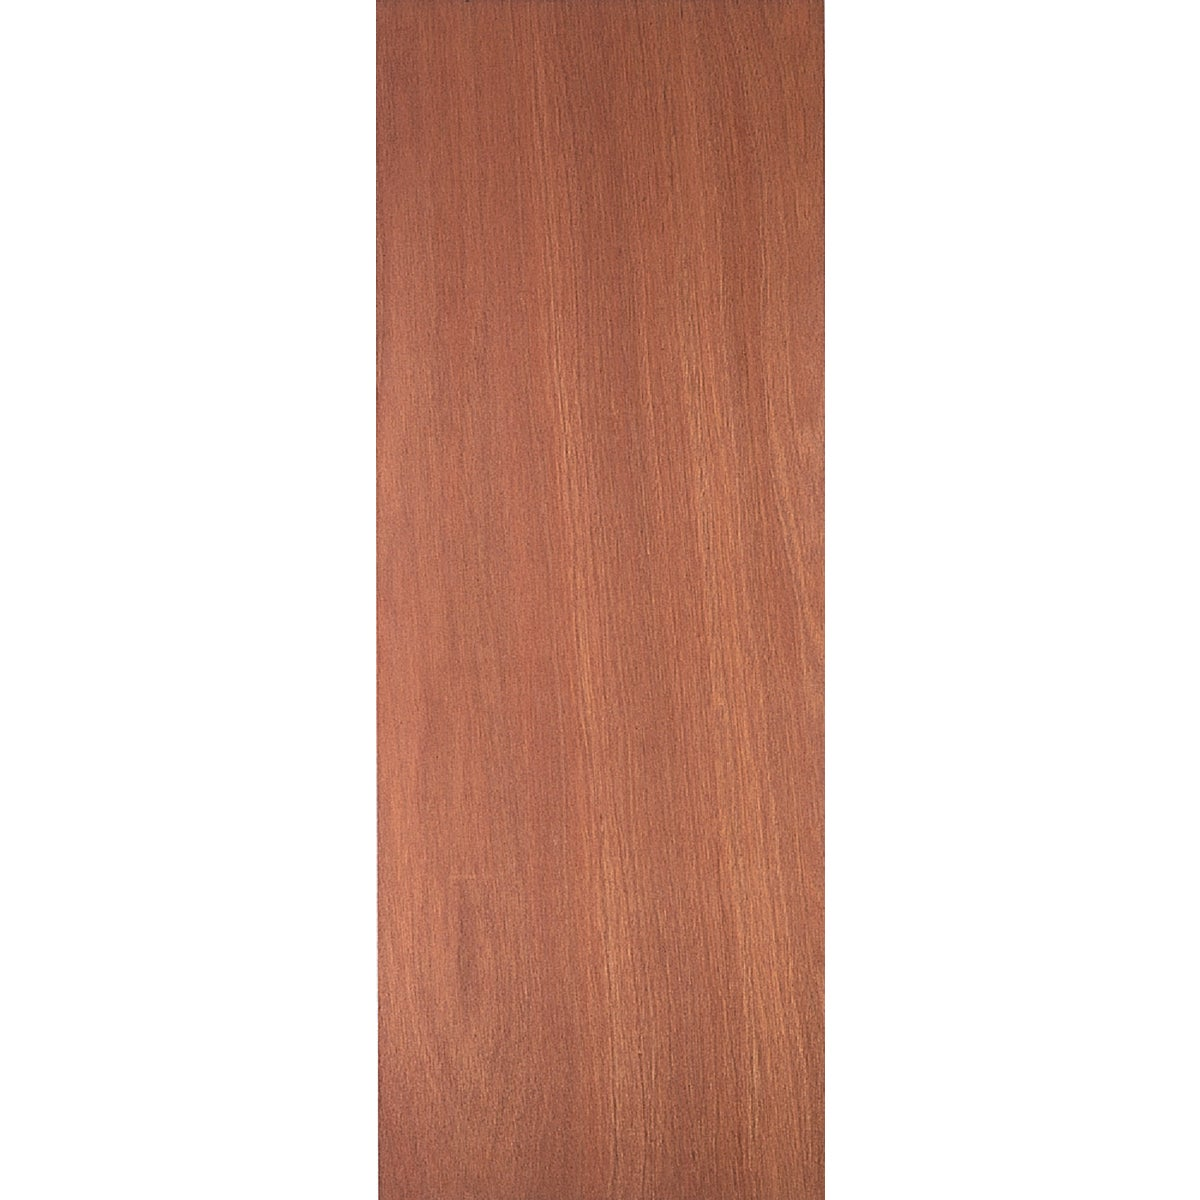 "2/8 1-3/8"" LAUAN HC DOOR -  by Masonite"